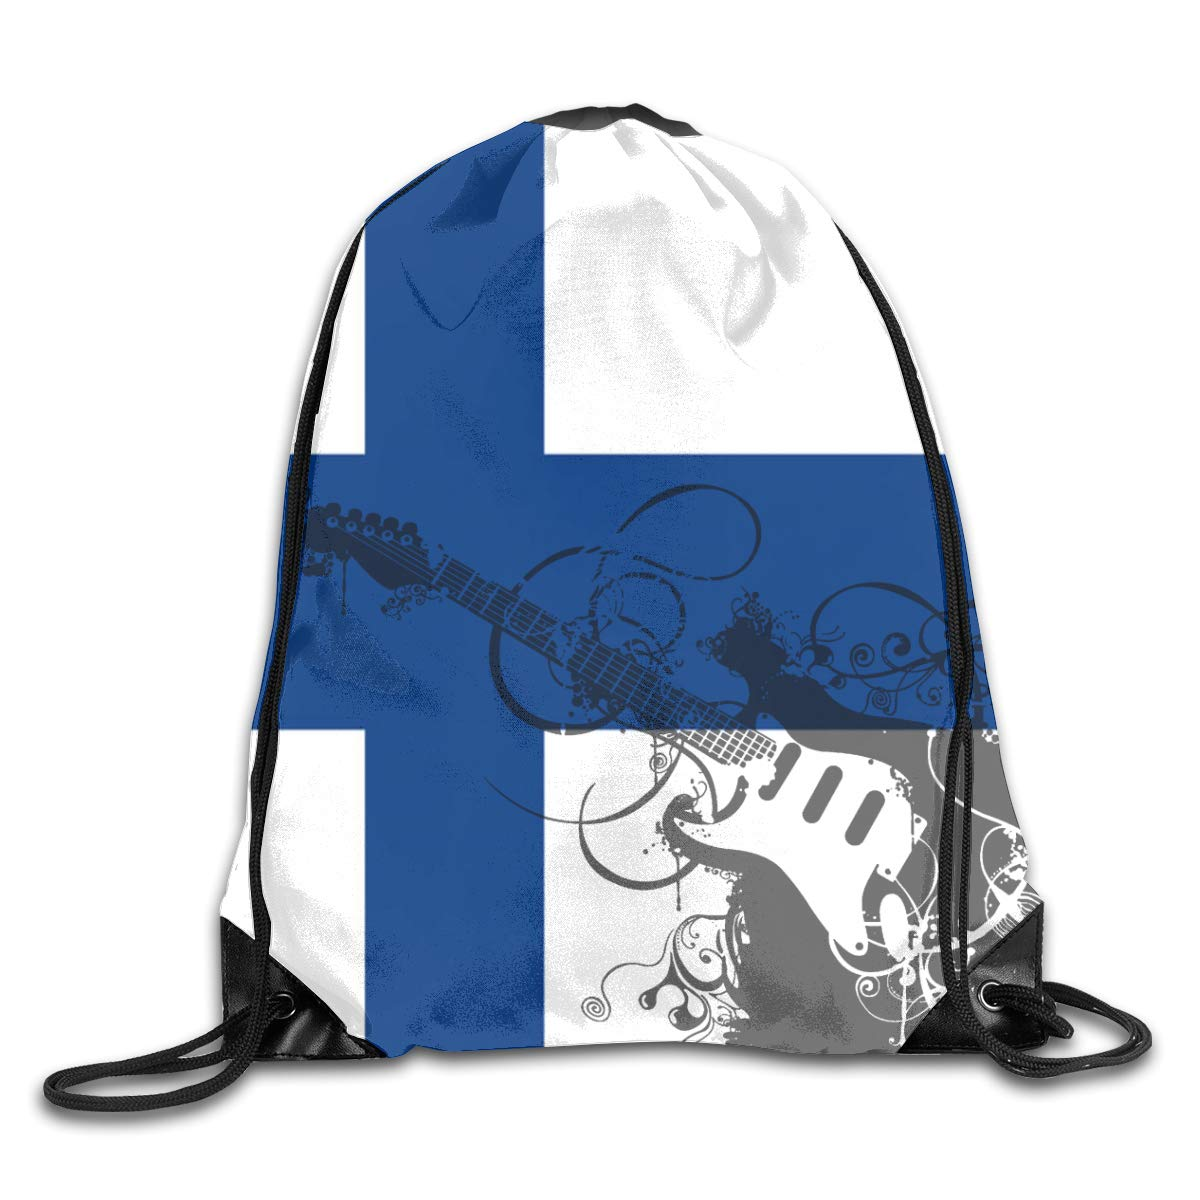 Finnish Flag Beam Mouth Backpack Pull Rope Shoulder Bag Outdoor Sports Leisure Bag